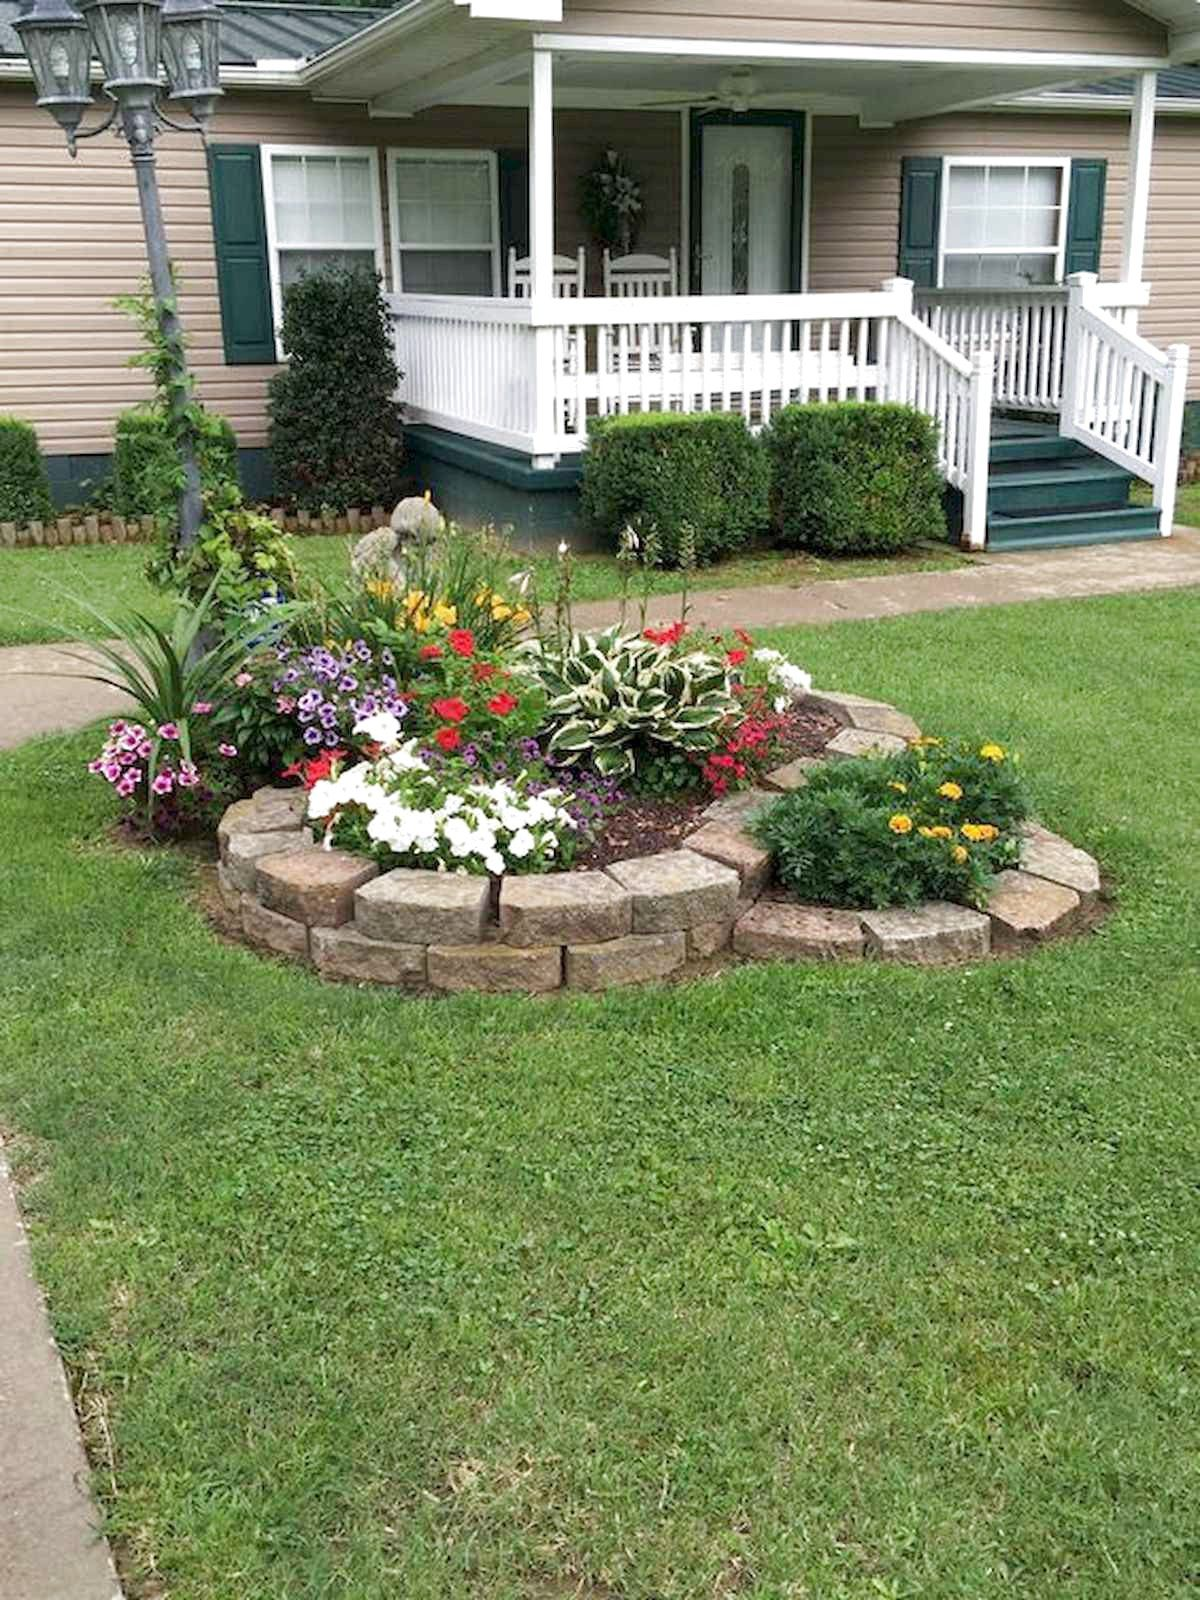 43 Best Front Yard Garden Landscaping Design Ideas And ... on Front Yard Renovation Ideas id=30262